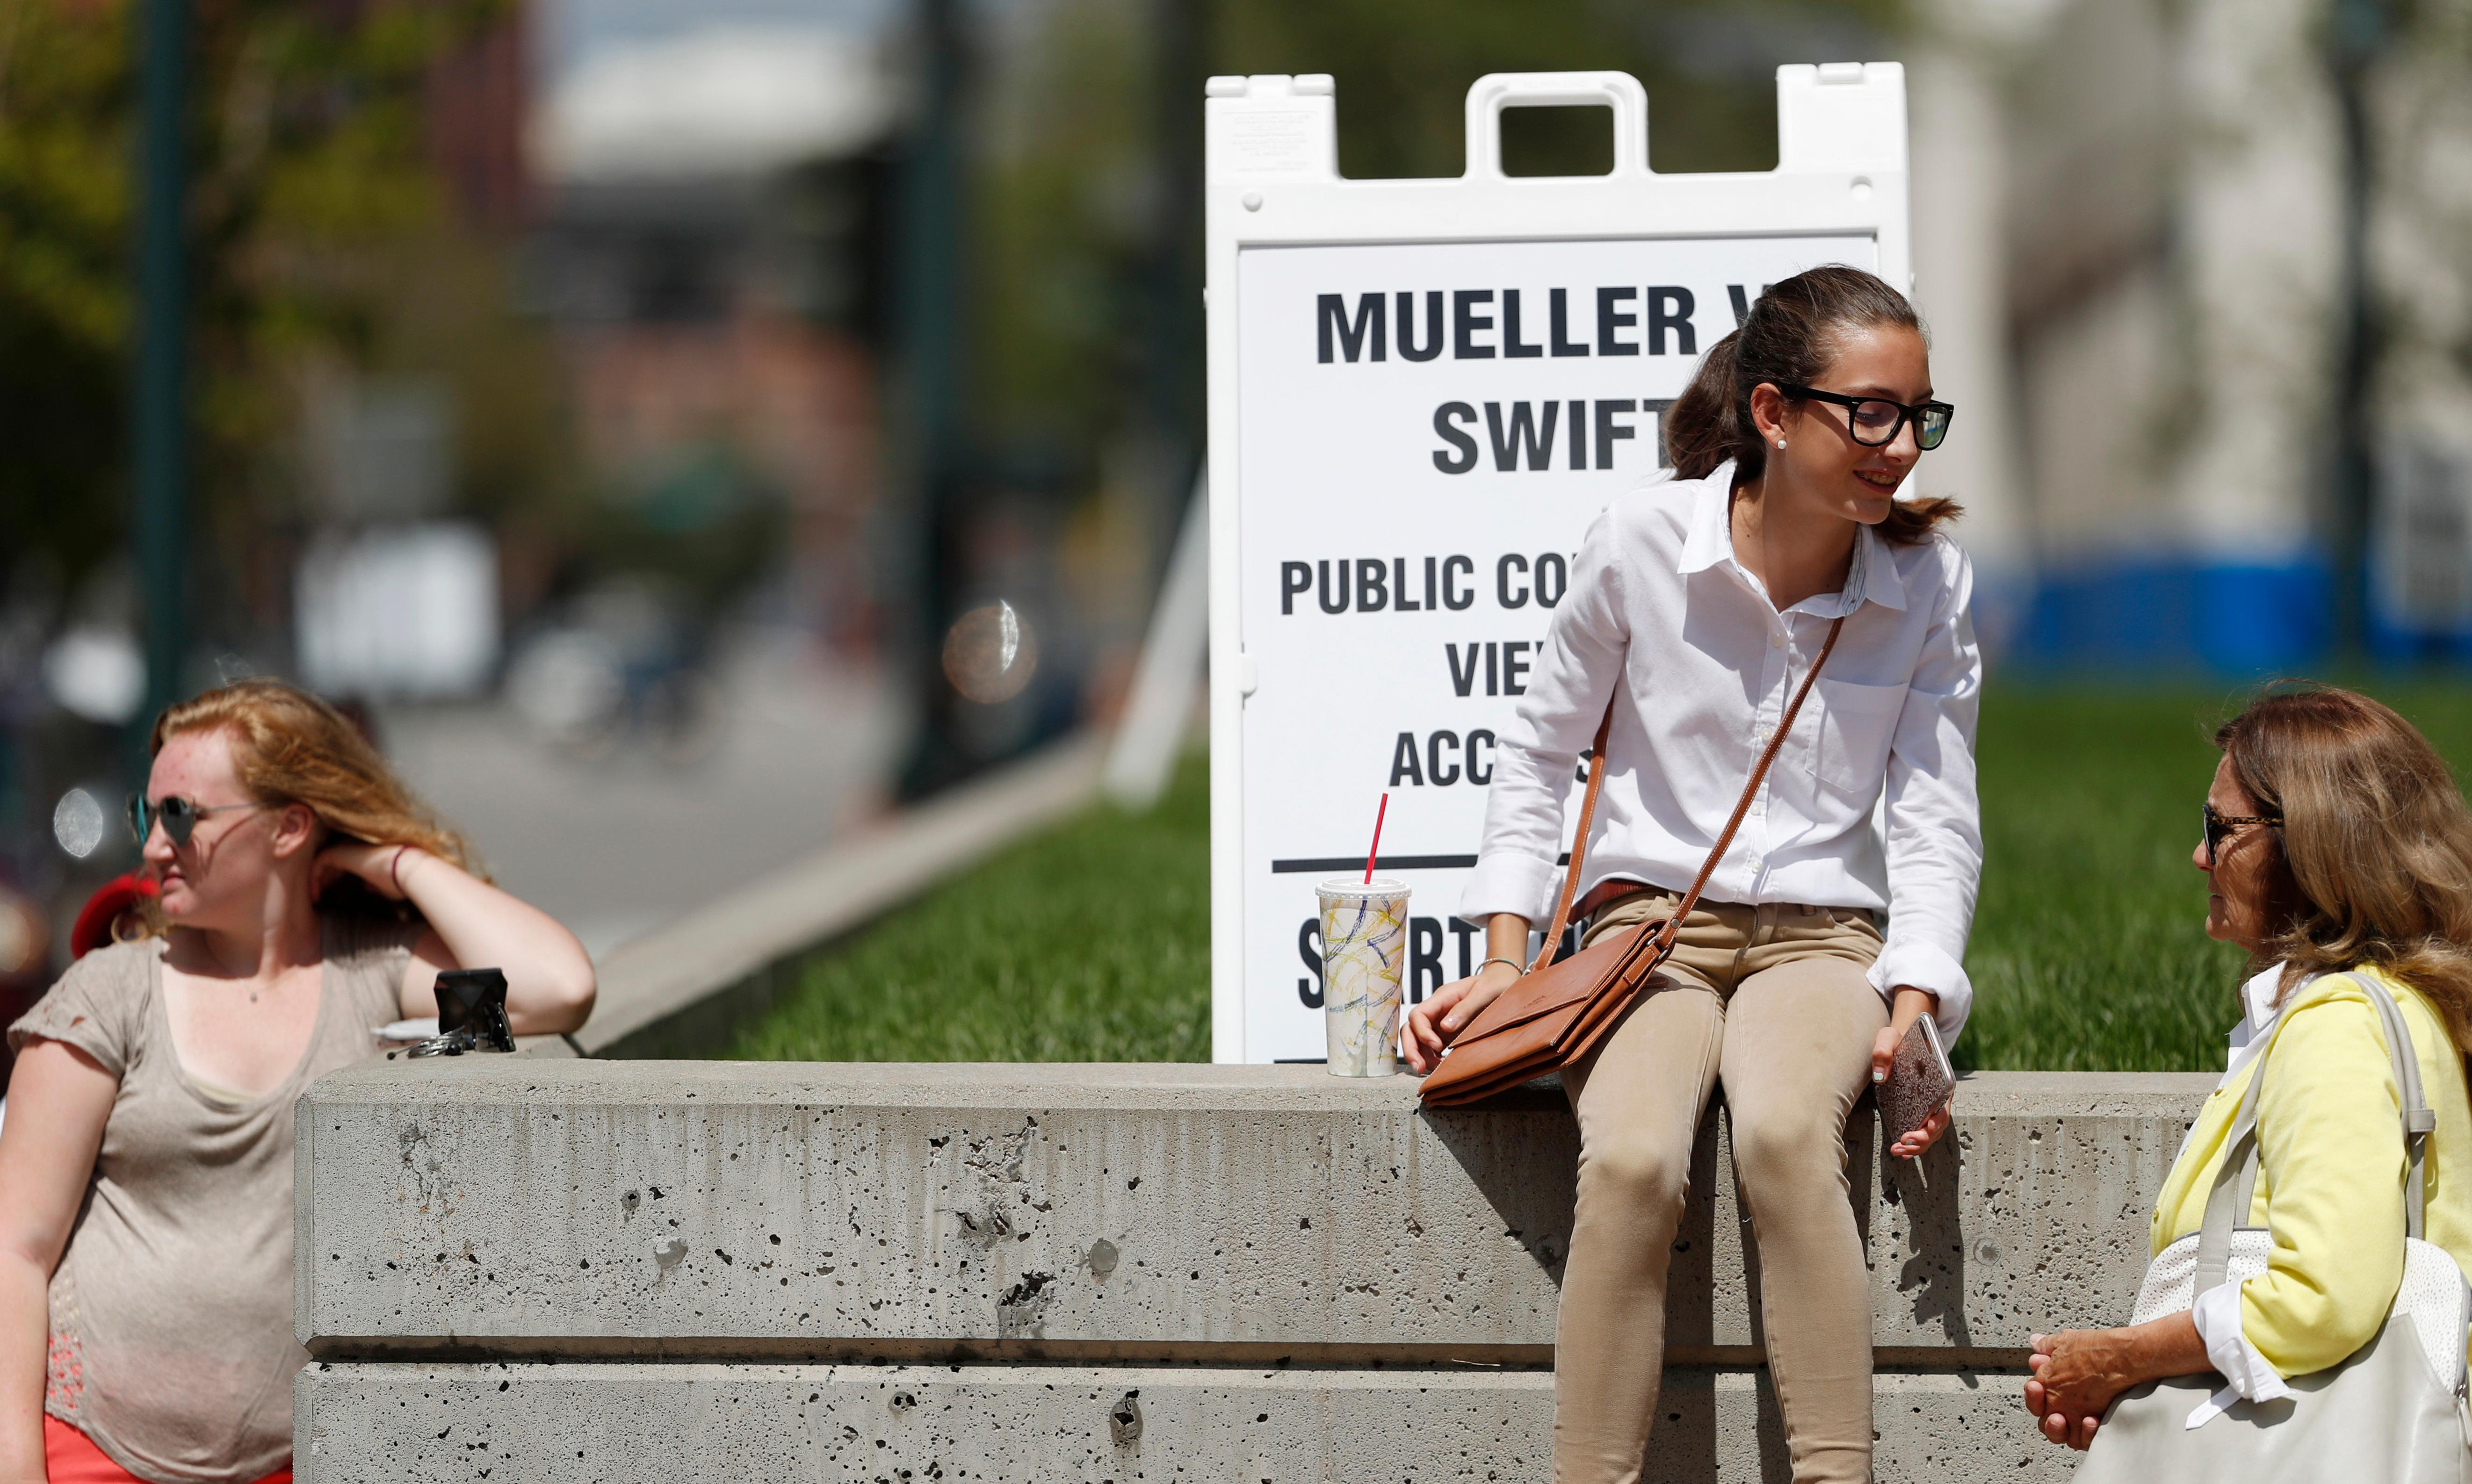 Fourteen-year-old Kennedy Wares, second from right, confers with her grandmother, Nancy Elliott, both of Littleton, Colo., as they move up the public line to view the civil trial involving pop singer Taylor Swift, Friday, Aug. 11, 2017, in Denver. (AP Photo/David Zalubowski)